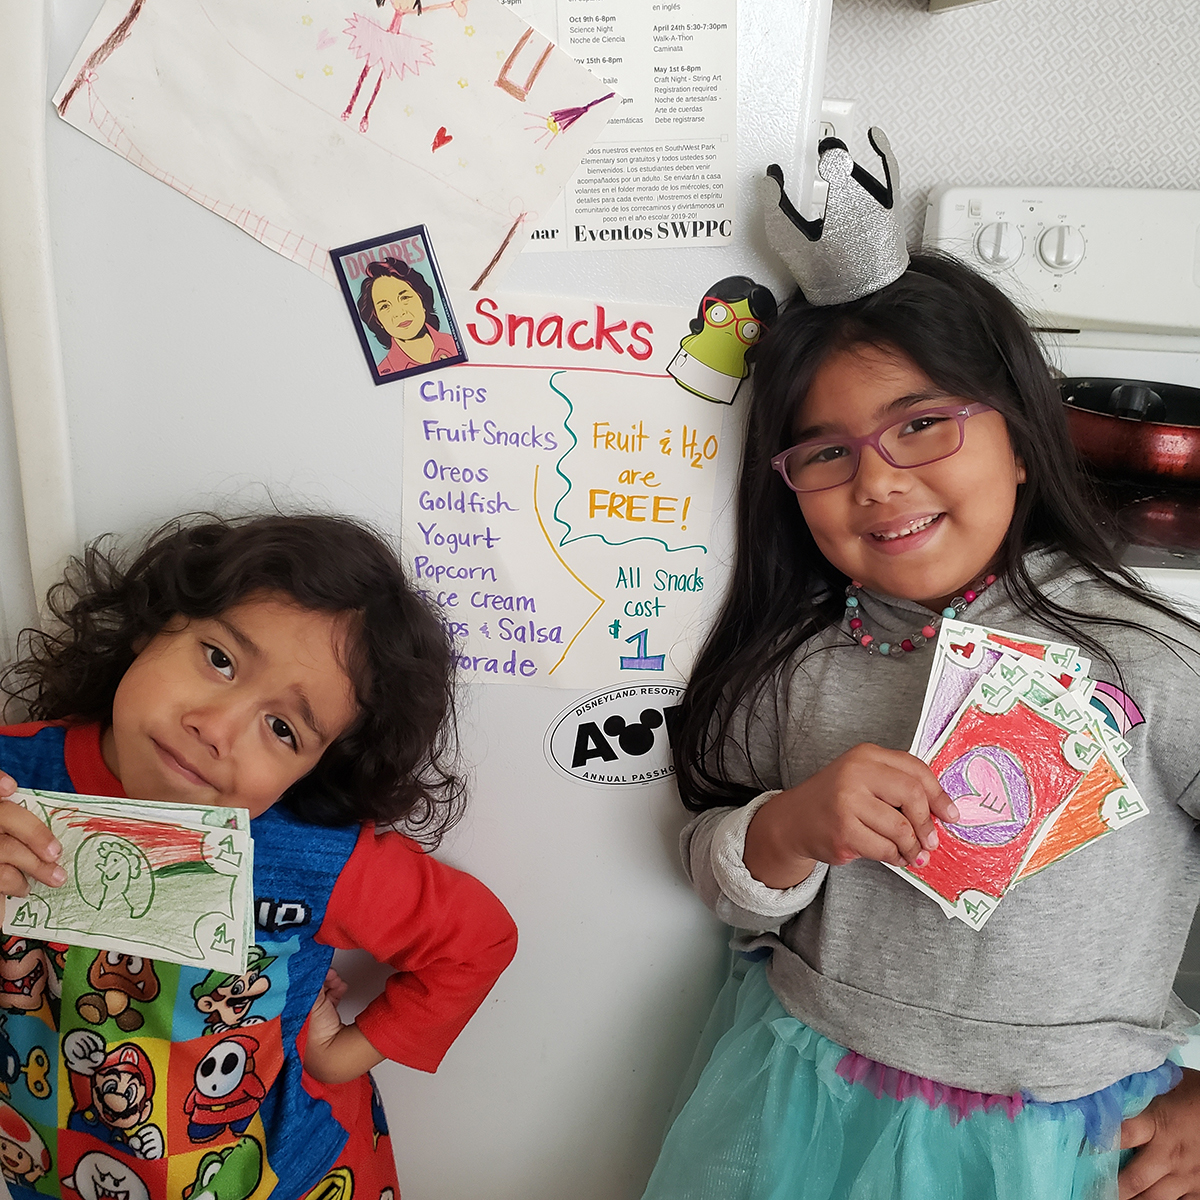 Gloria, photo of two children posing in front of a fridge for tell your story